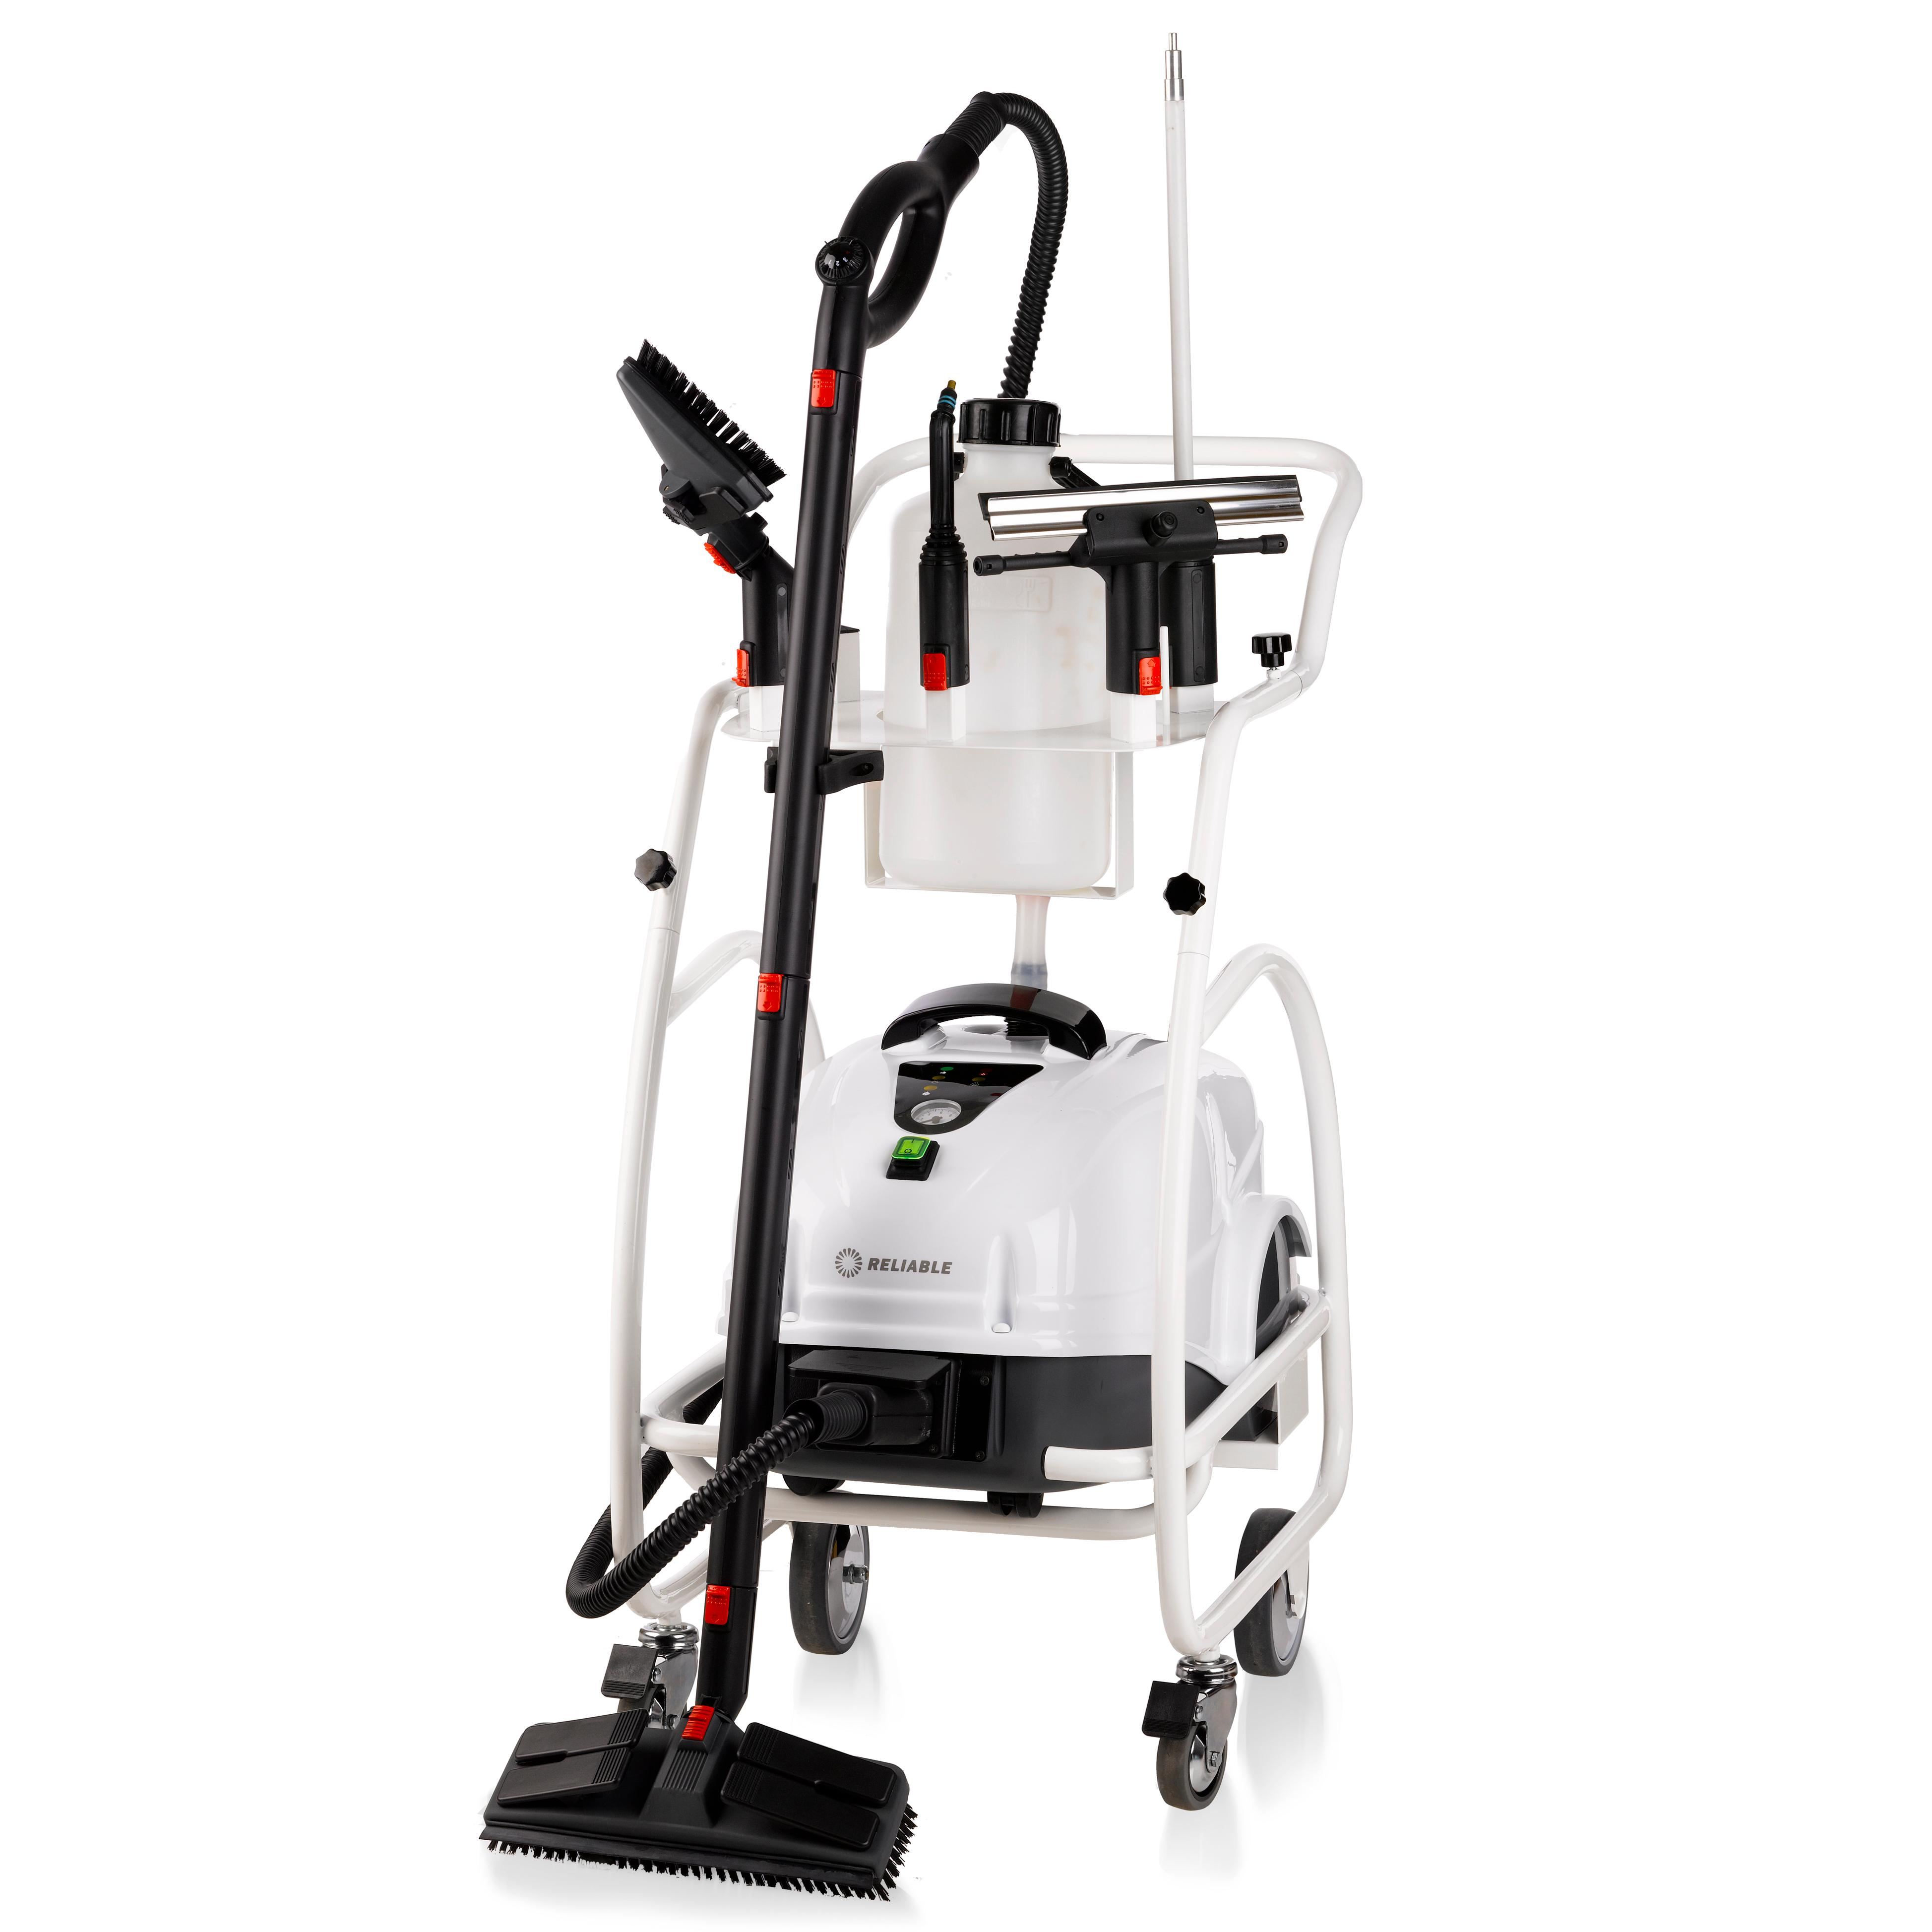 Amazon Reliable Brio Pro 1000CC mercial Steam Cleaner with